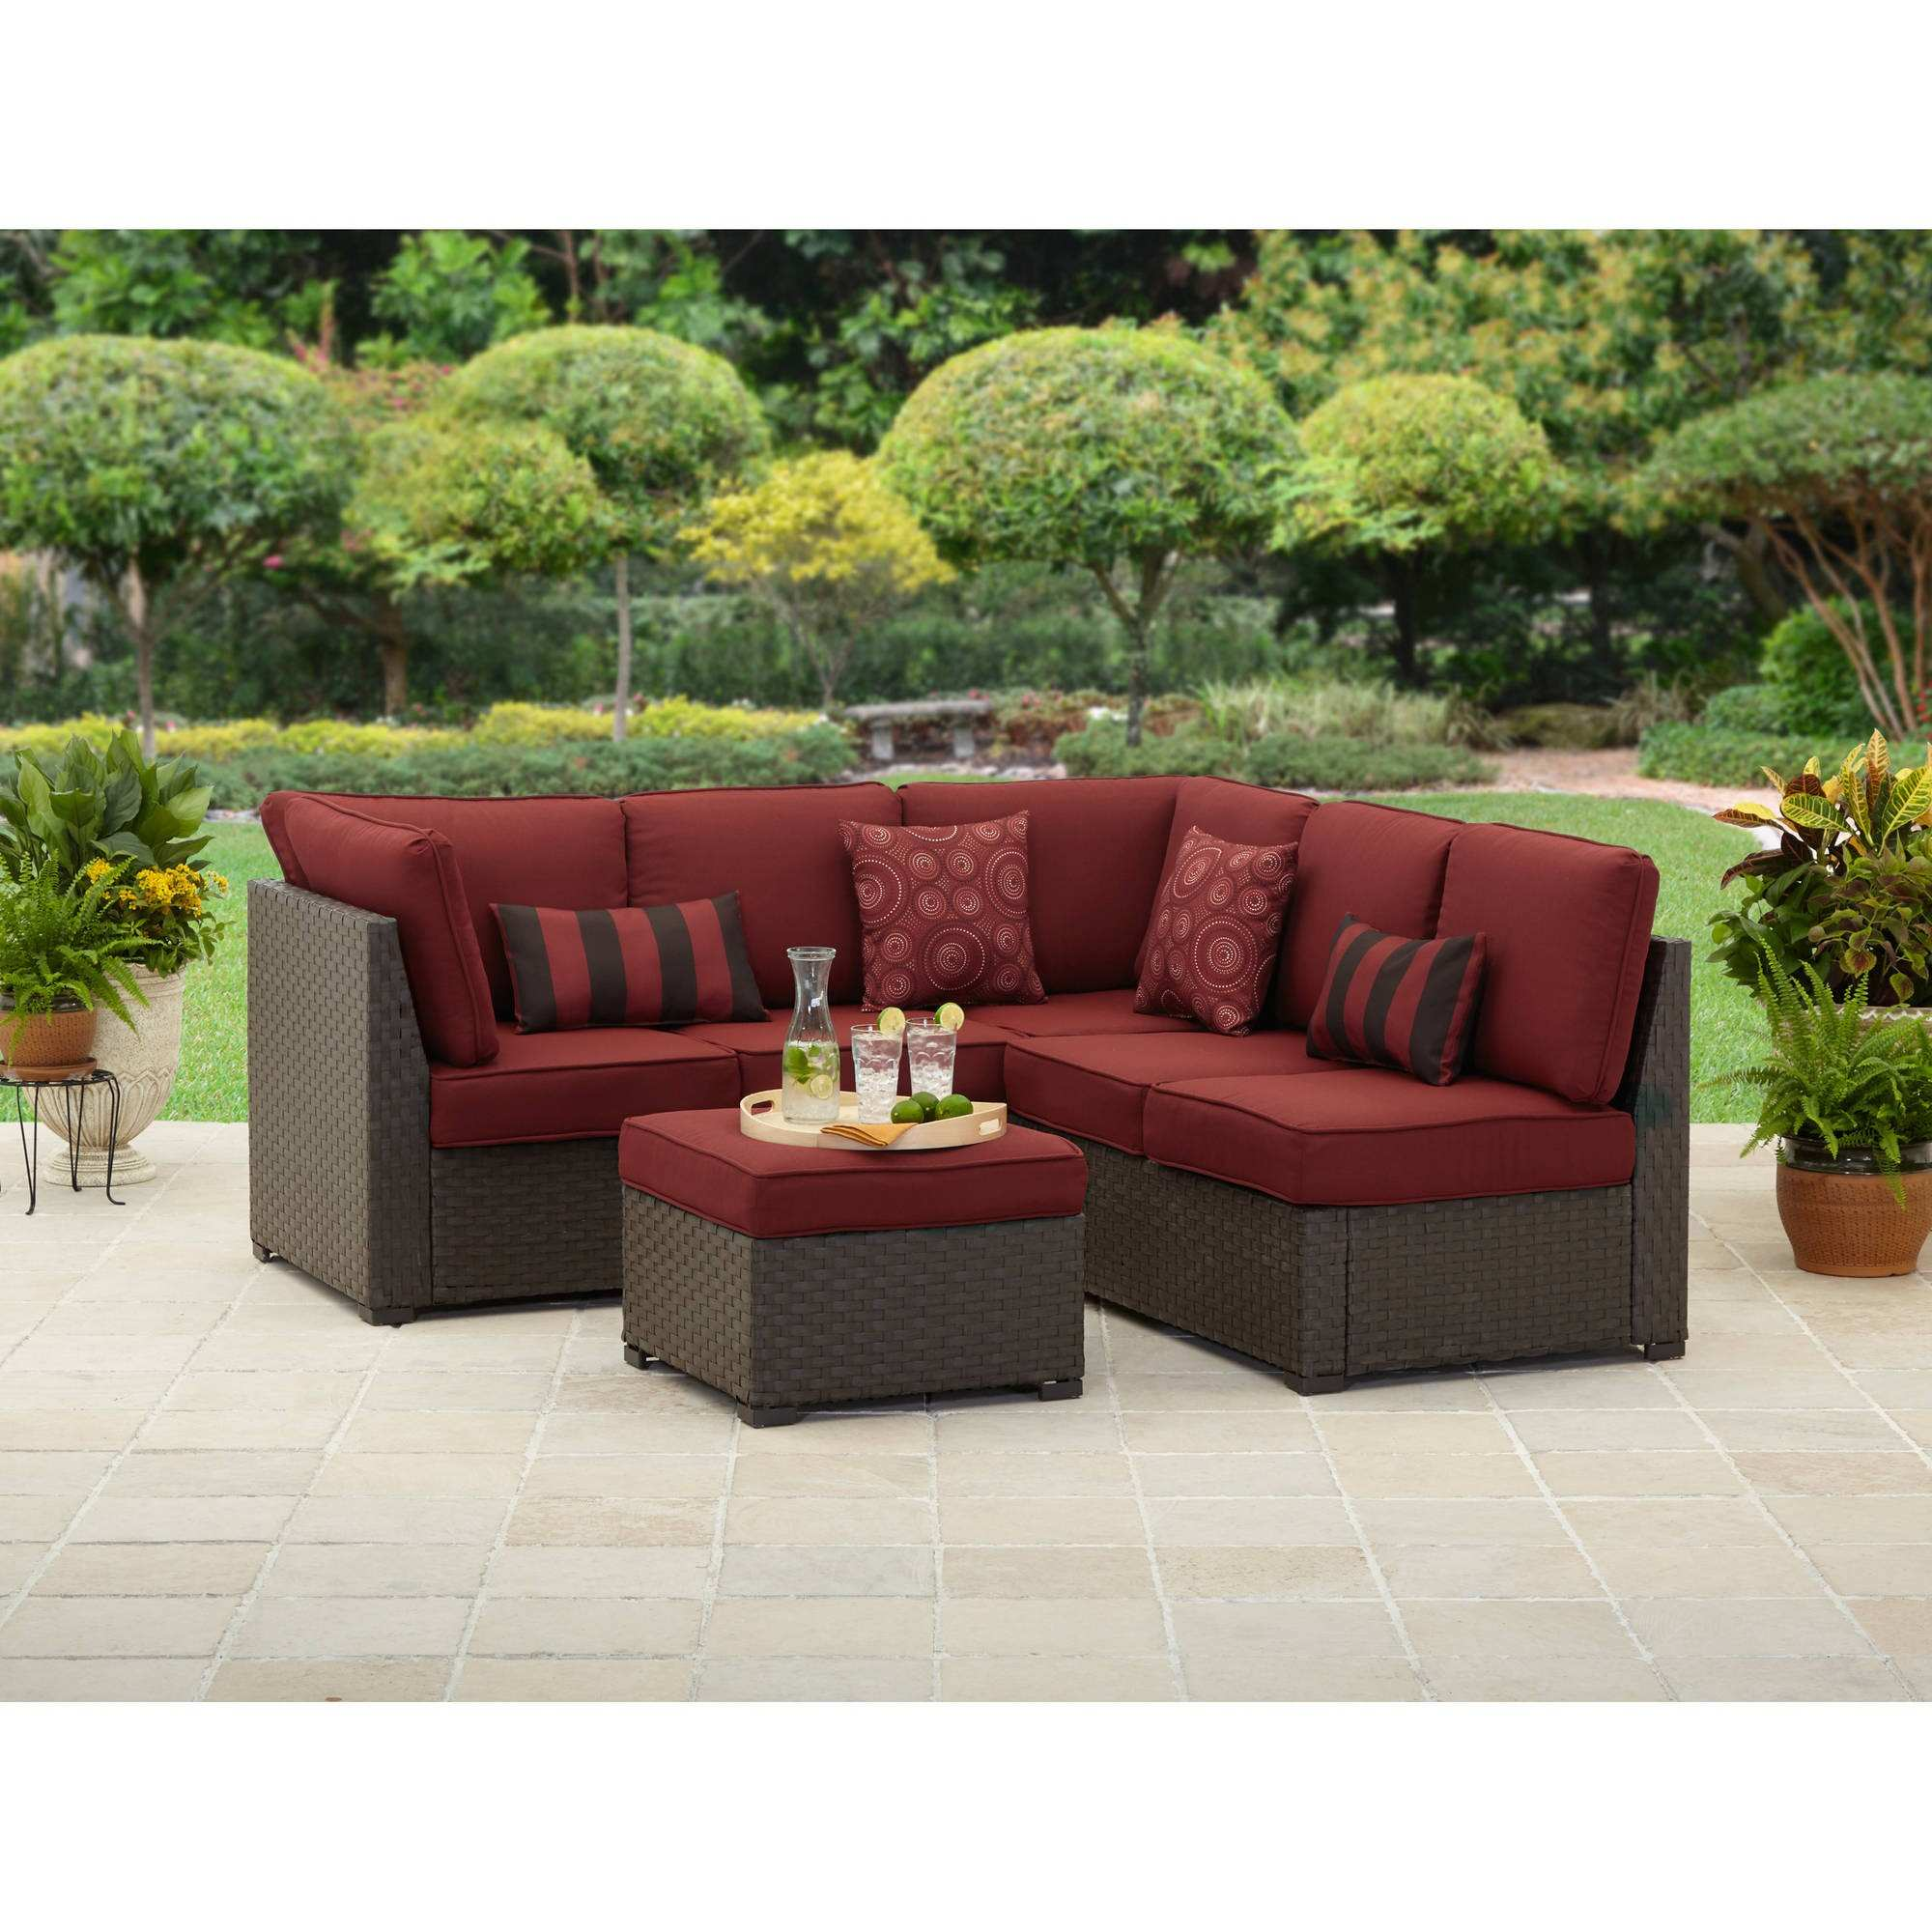 Patio Coral Chair Luxury Unique Wicker Outdoor Sofa 0d Patio